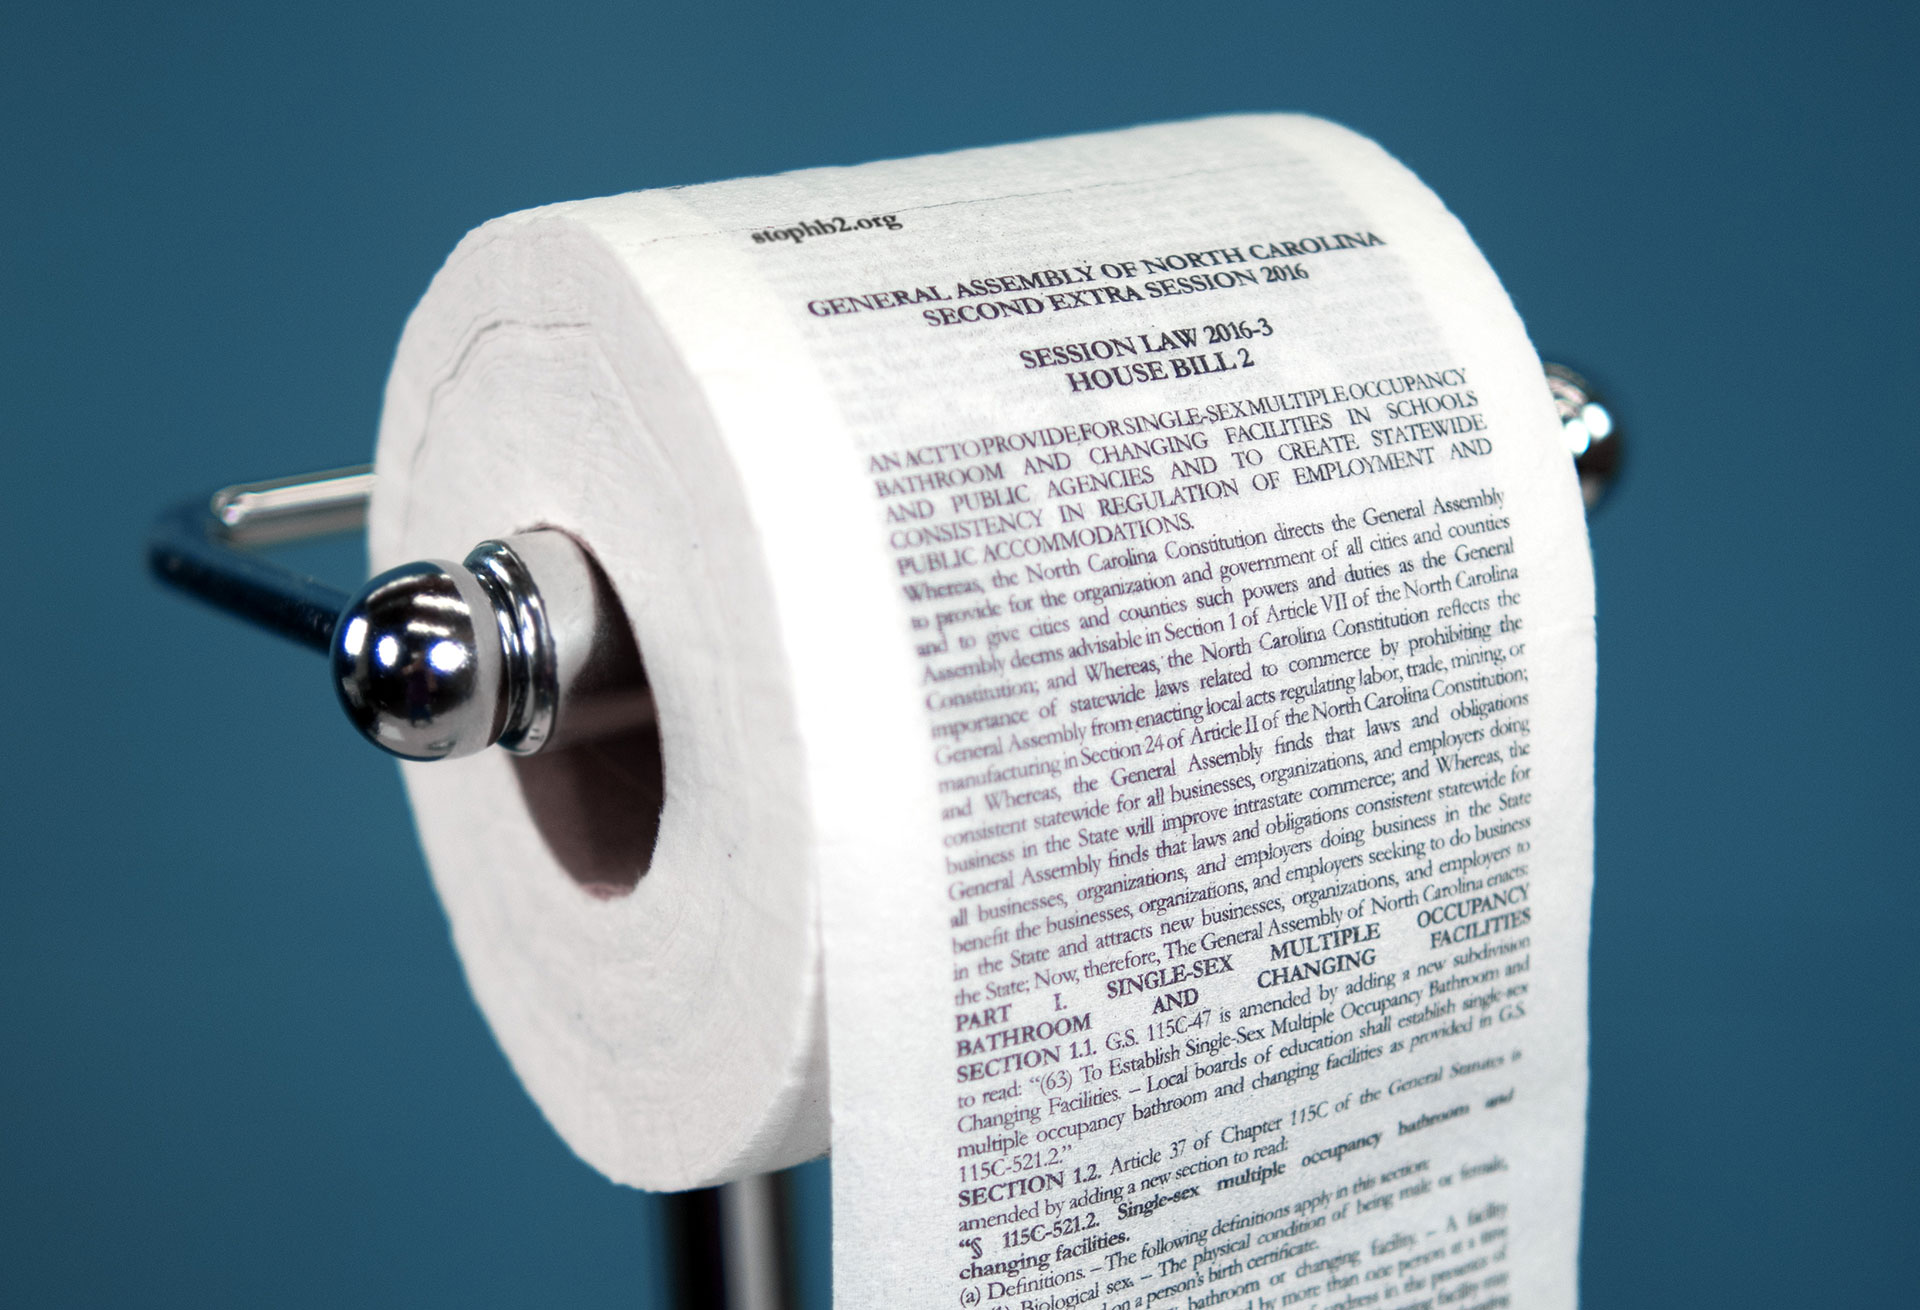 McKinney Printed NCs Bathroom Bill on Toilet Paper You Know What to Do With It  Adweek